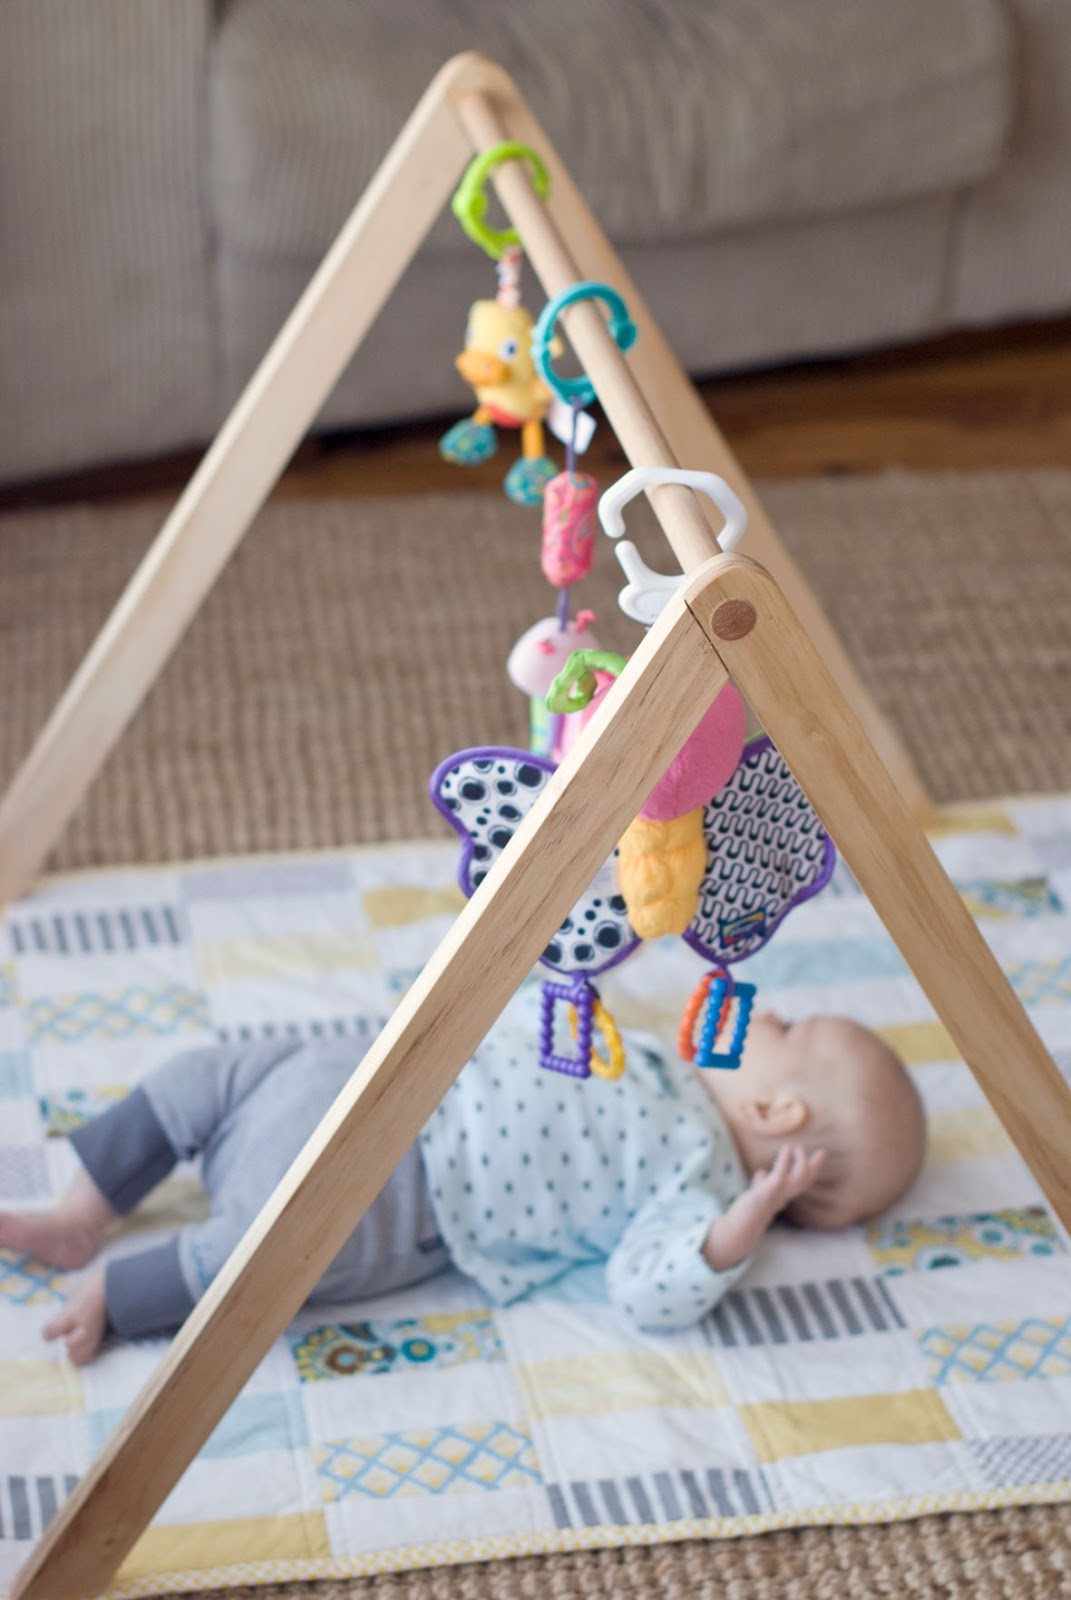 Baby Gym Diy  Empty Handed Wooden Baby Gym TUTORIAL NOW AVAILABLE